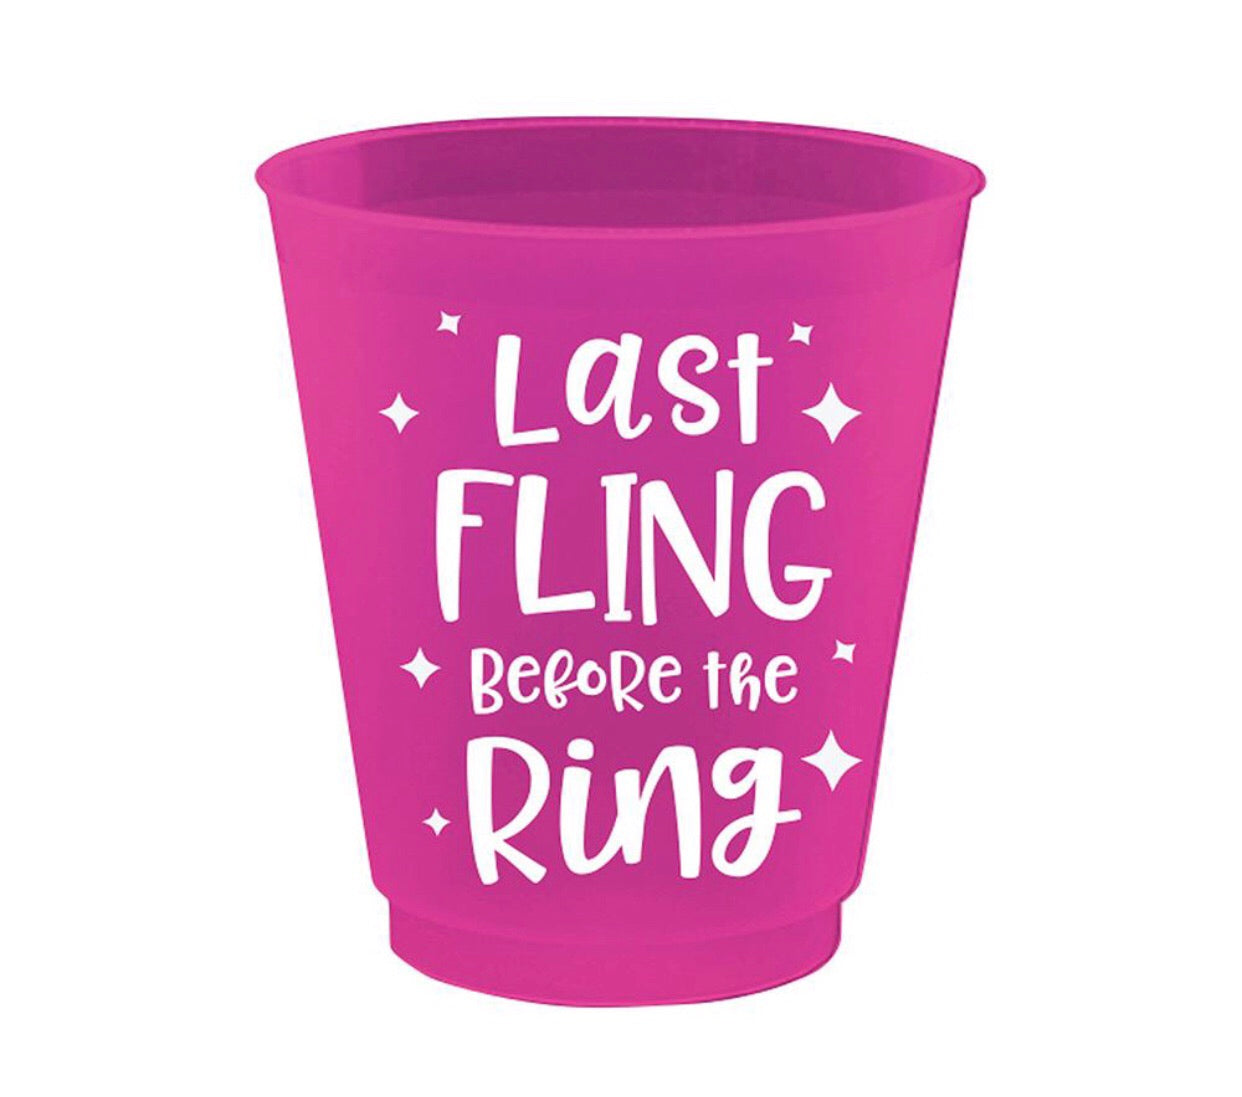 last fling before the ring shot glasses